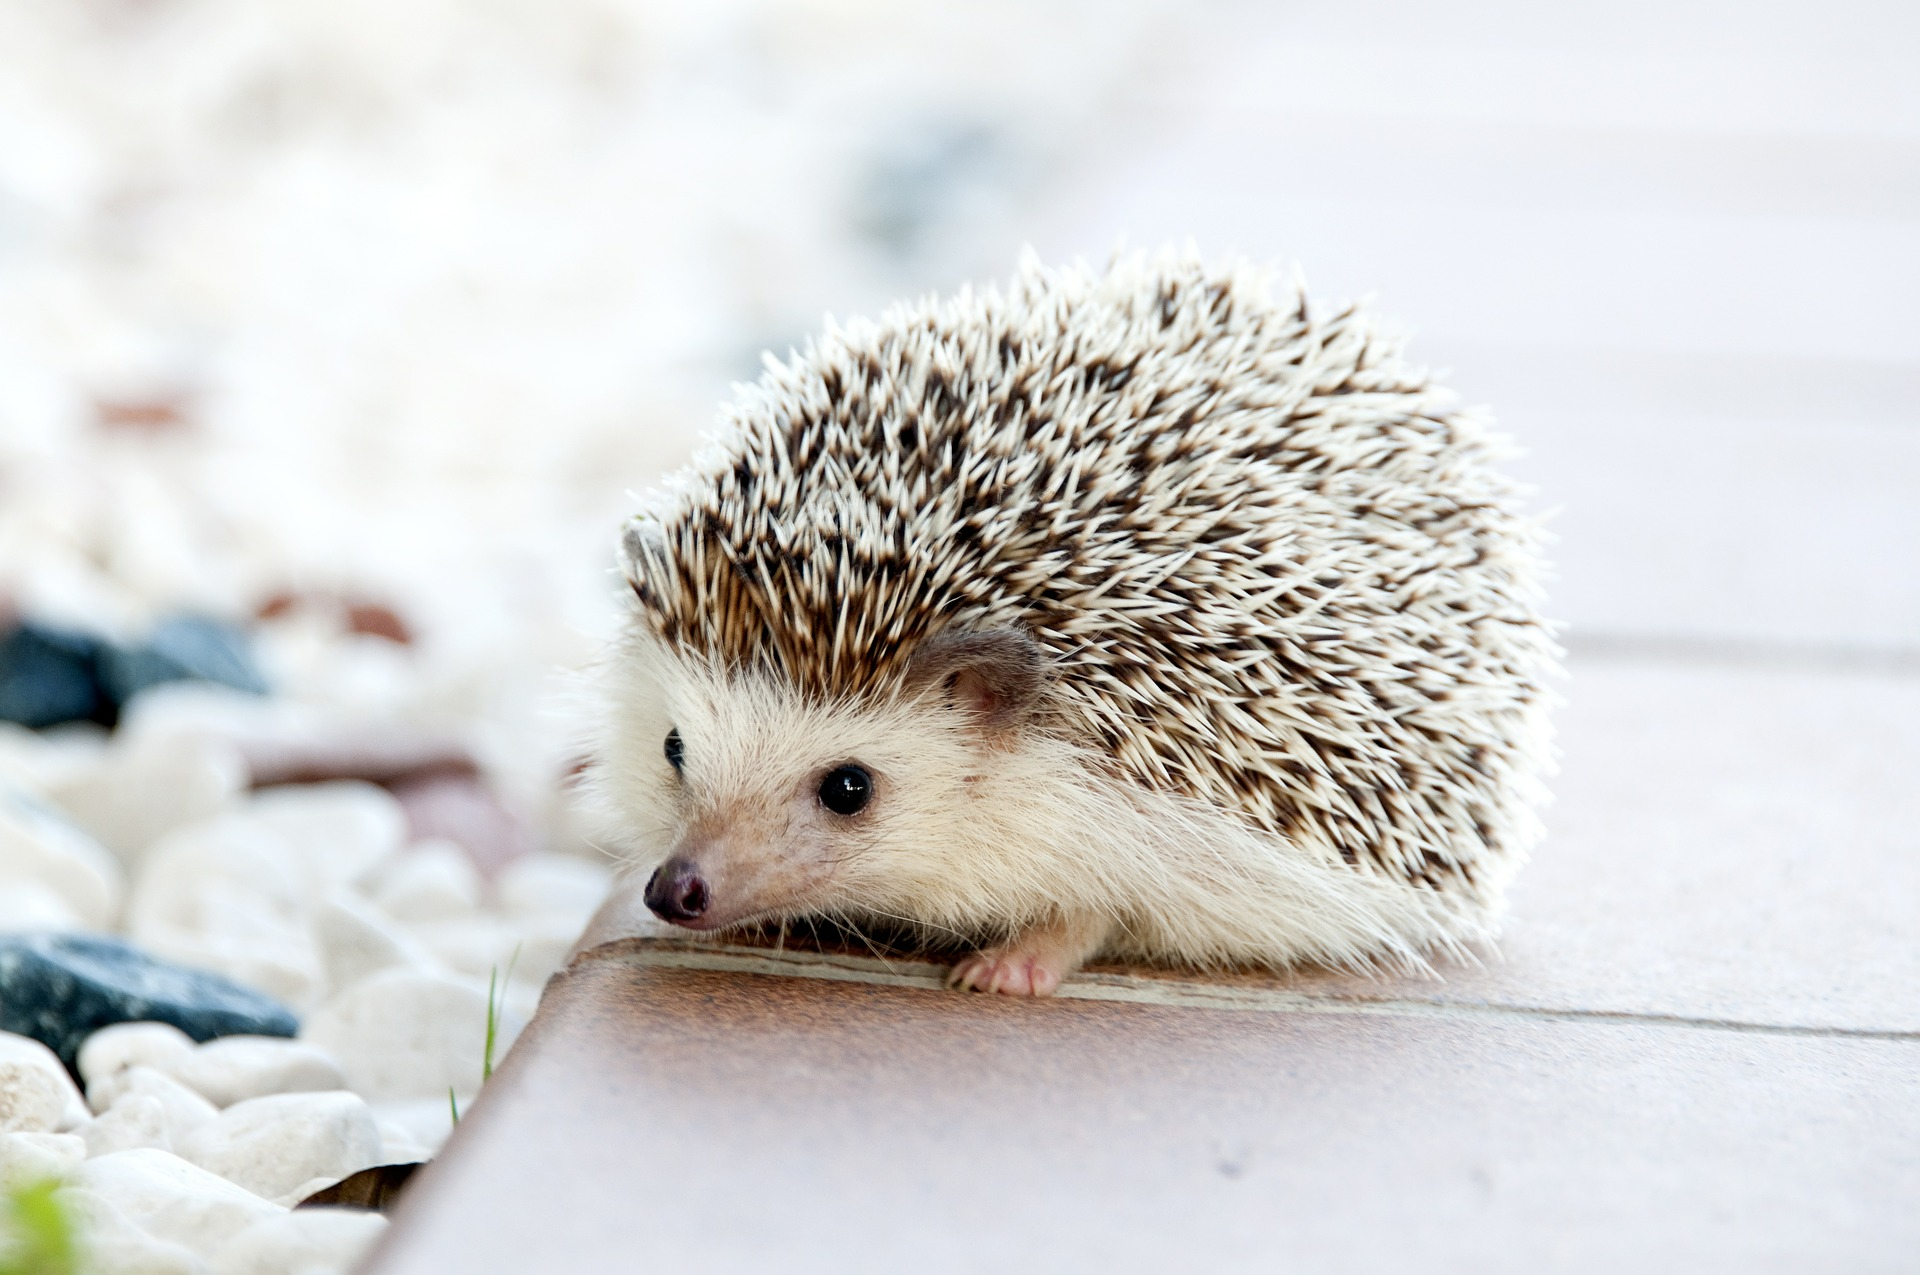 hedgehog-468228_1920